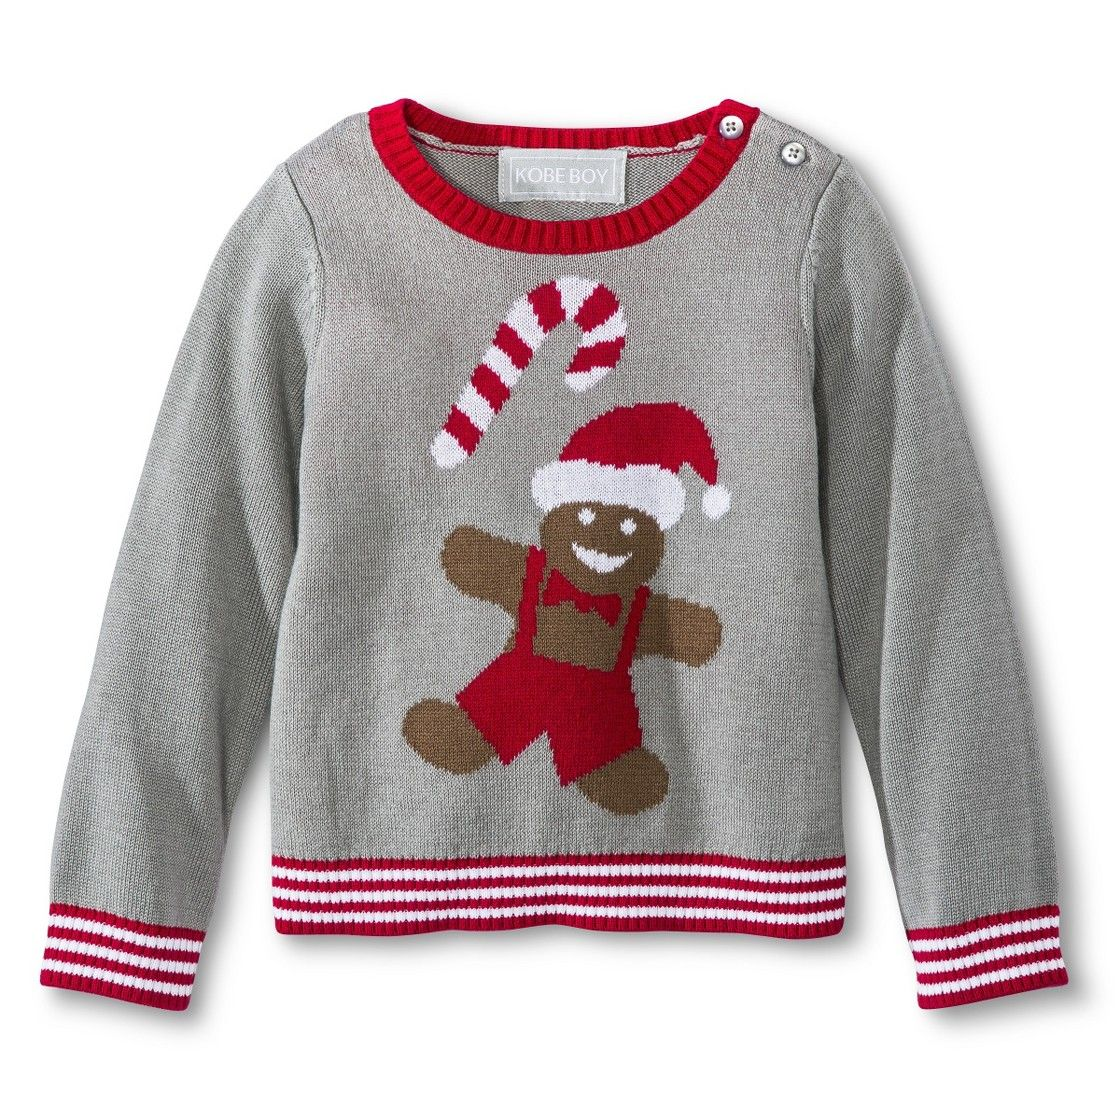 Shop for baby boy christmas sweaters online at Target. Free shipping on purchases over $35 and save 5% every day with your Target REDcard.